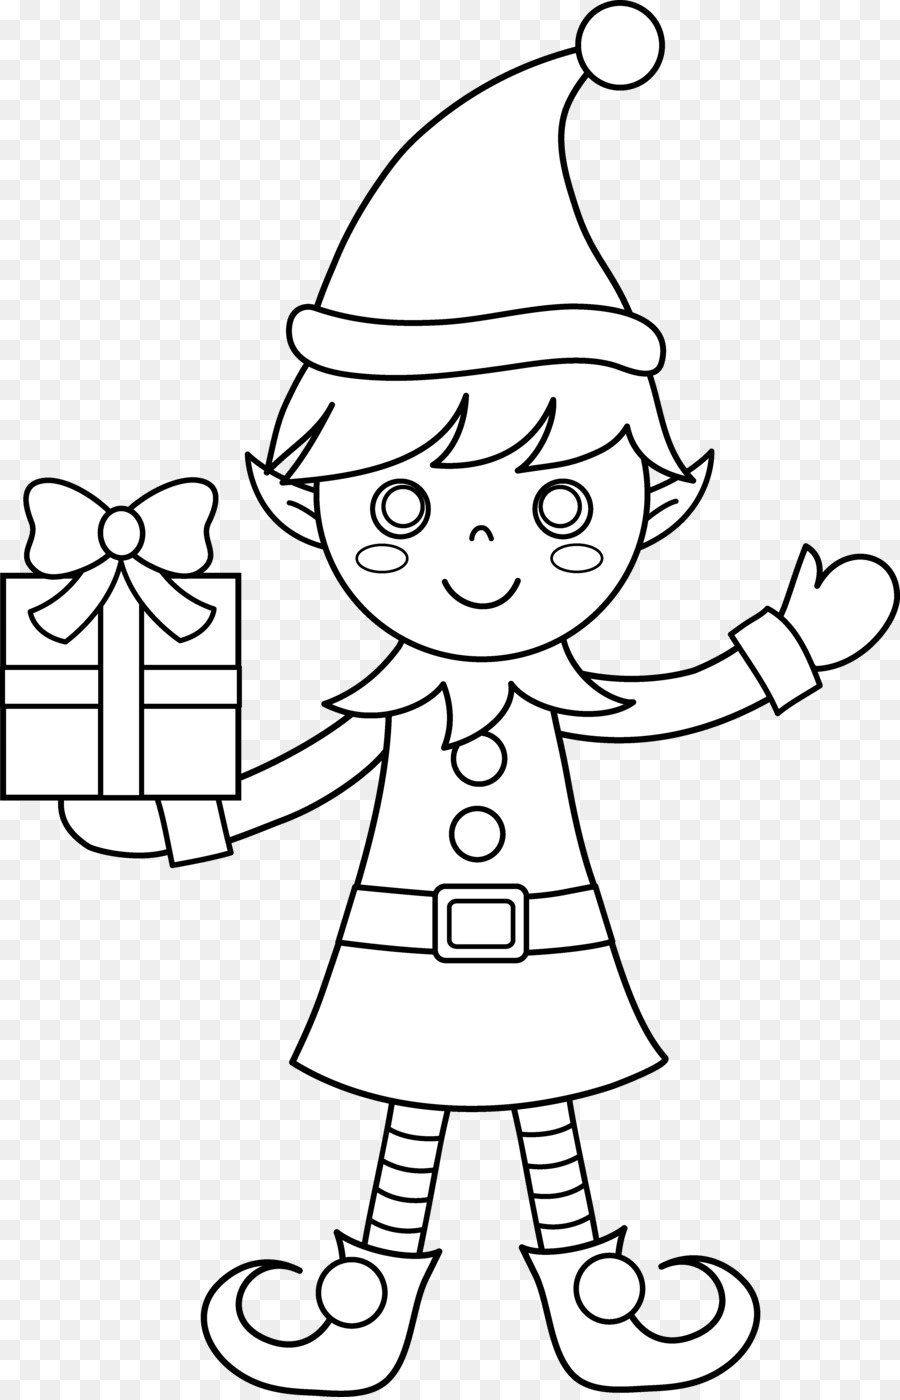 Download christmas elf colouring clipart Santa Claus Colouring Pages ...